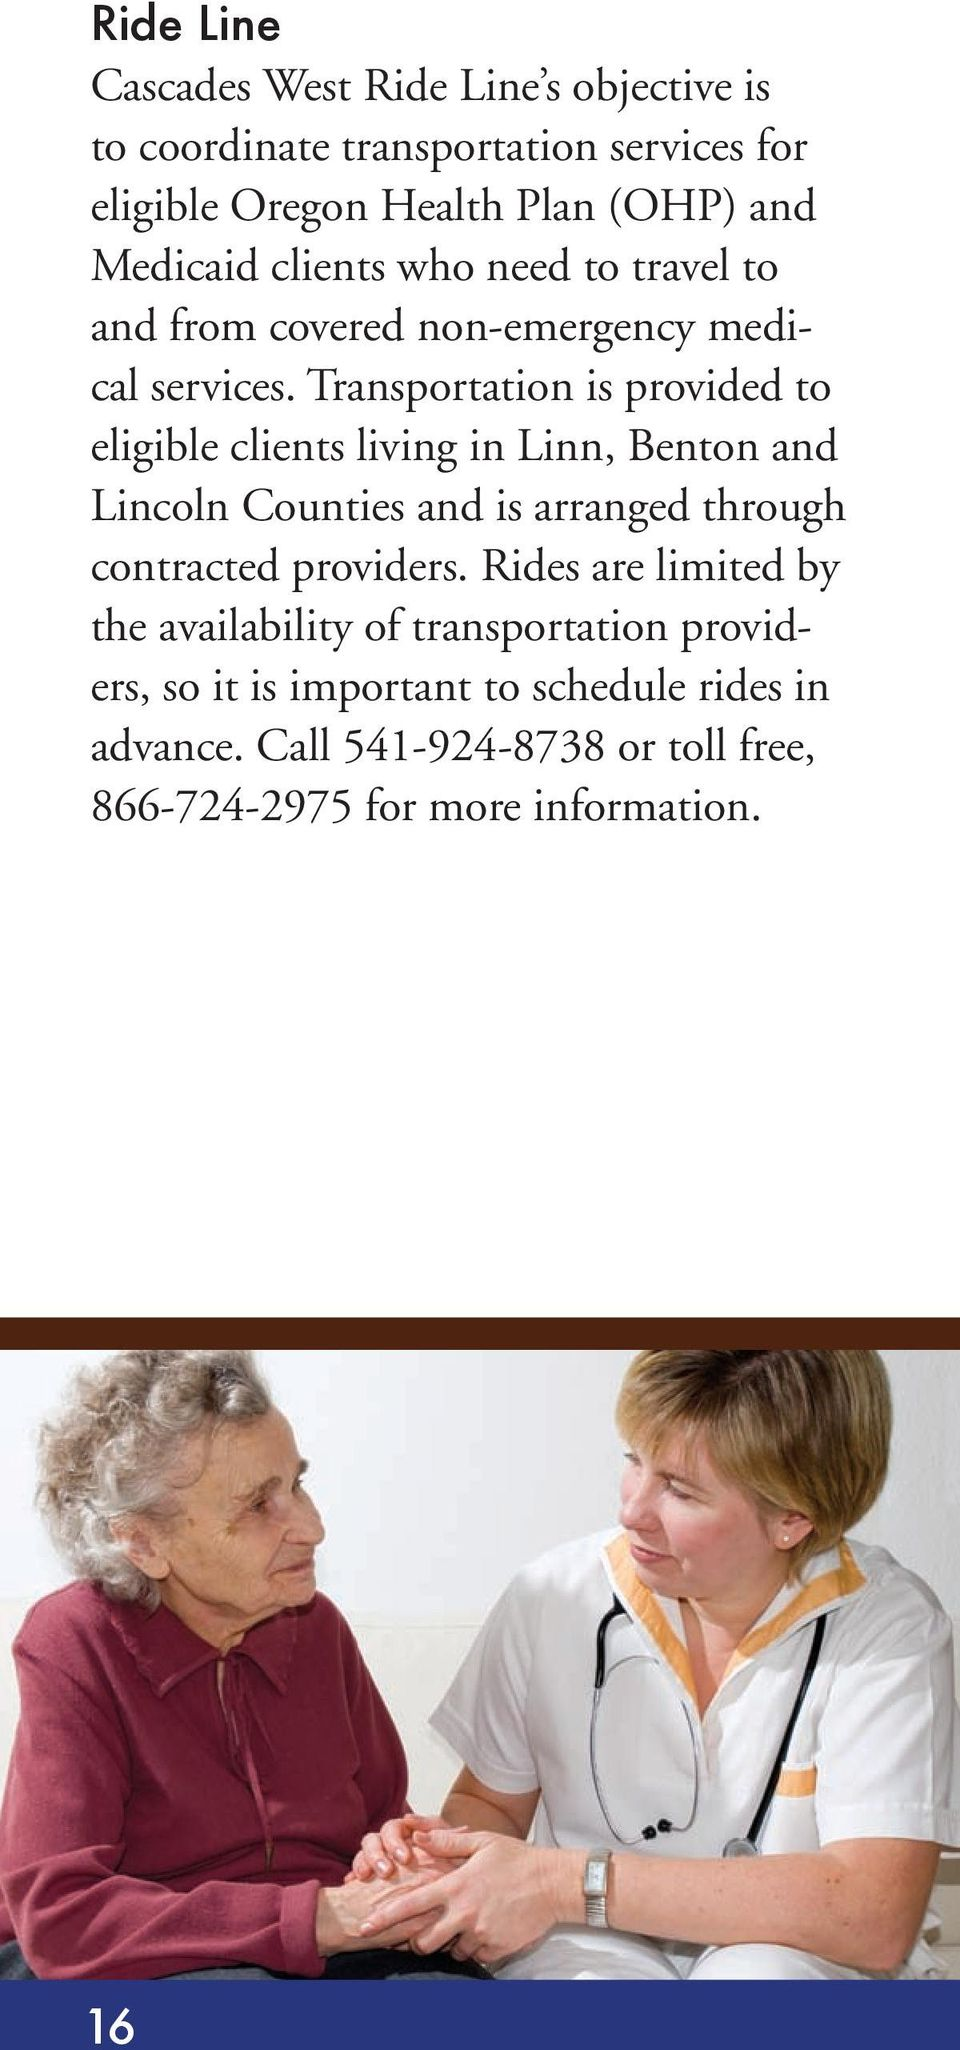 Transportation is provided to eligible clients living in Linn, Benton and Lincoln Counties and is arranged through contracted